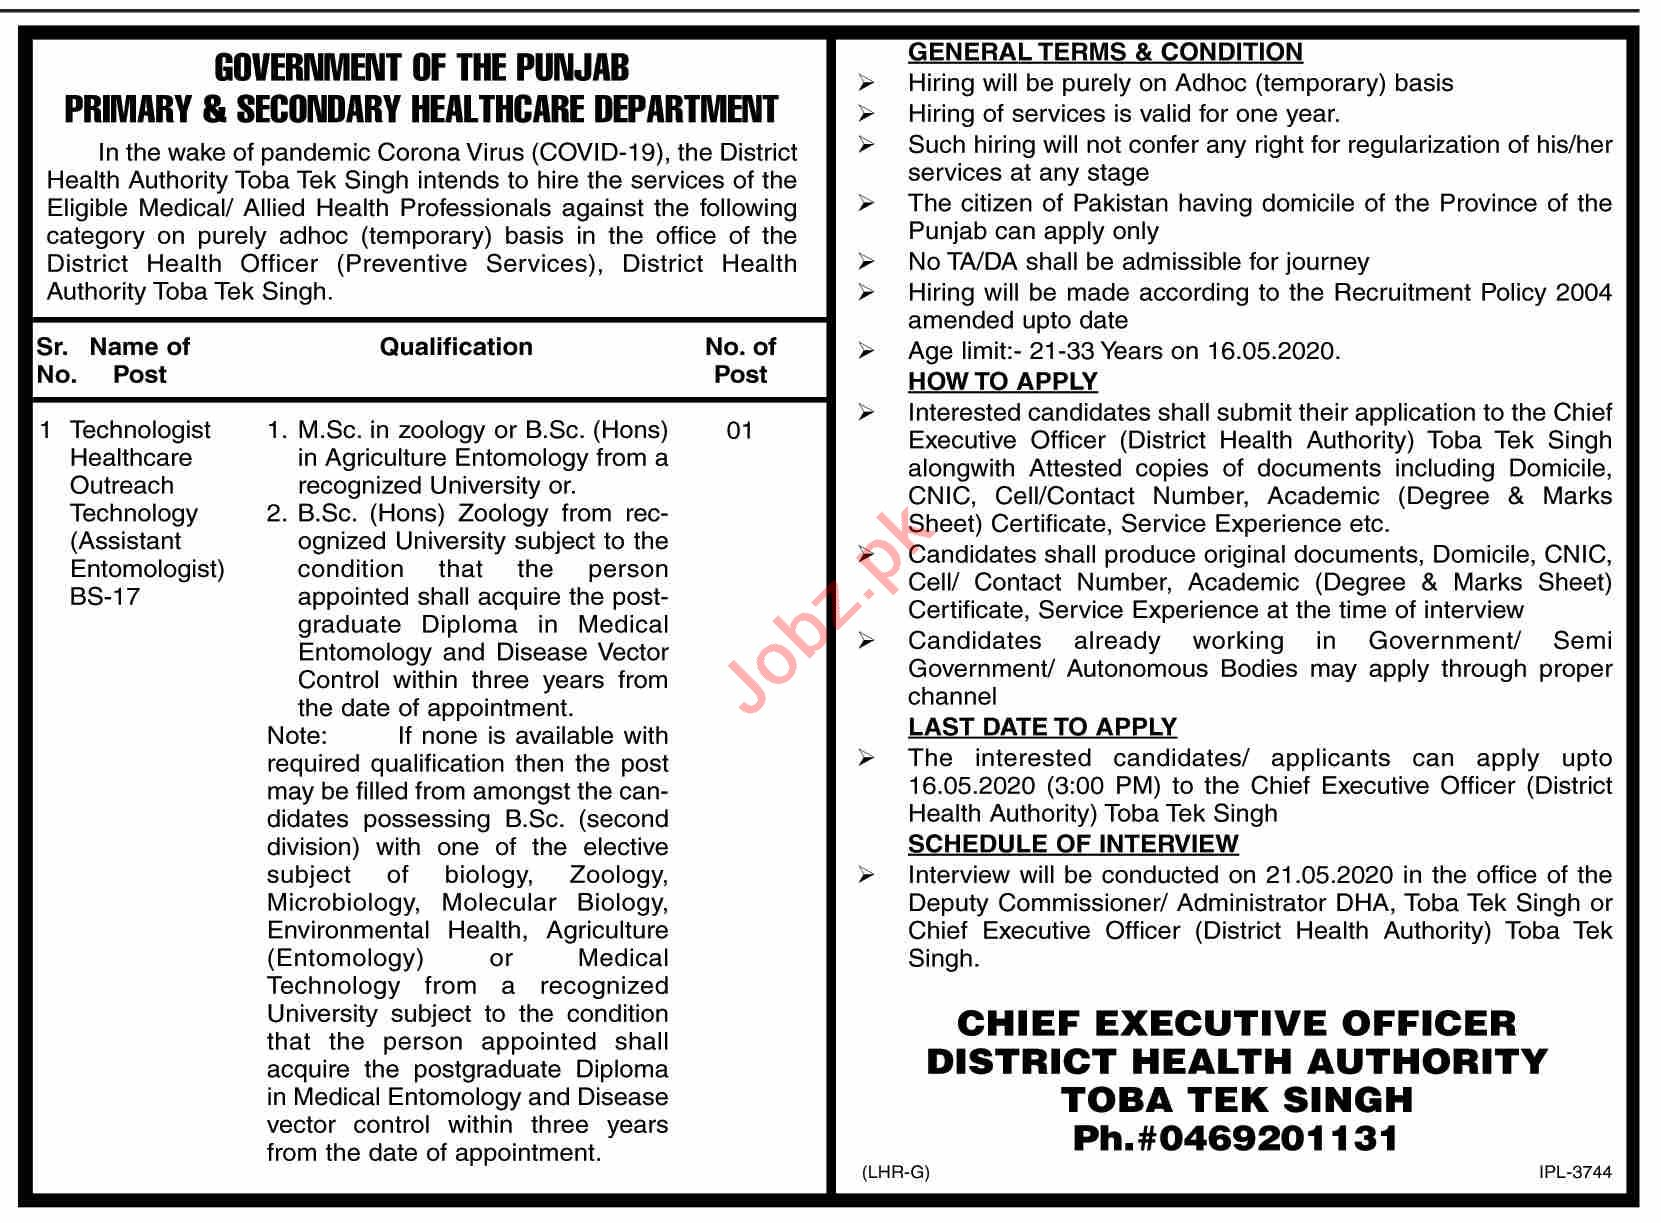 DHA Toba Tek Singh Jobs 2020 for Assistant Entomologist